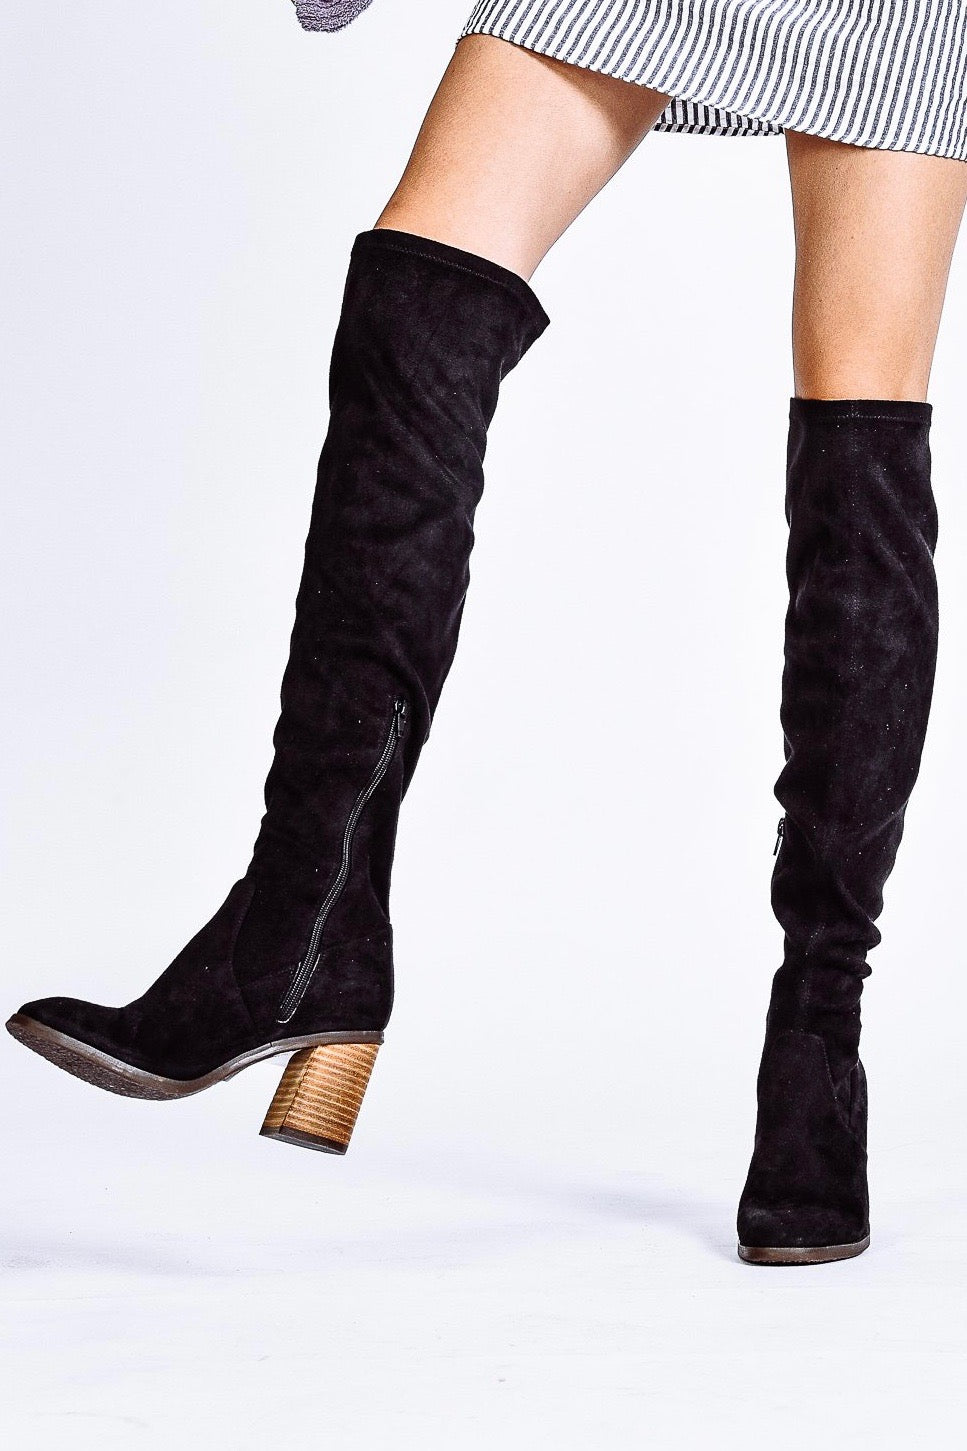 [shop name], Kacie over the knee boot